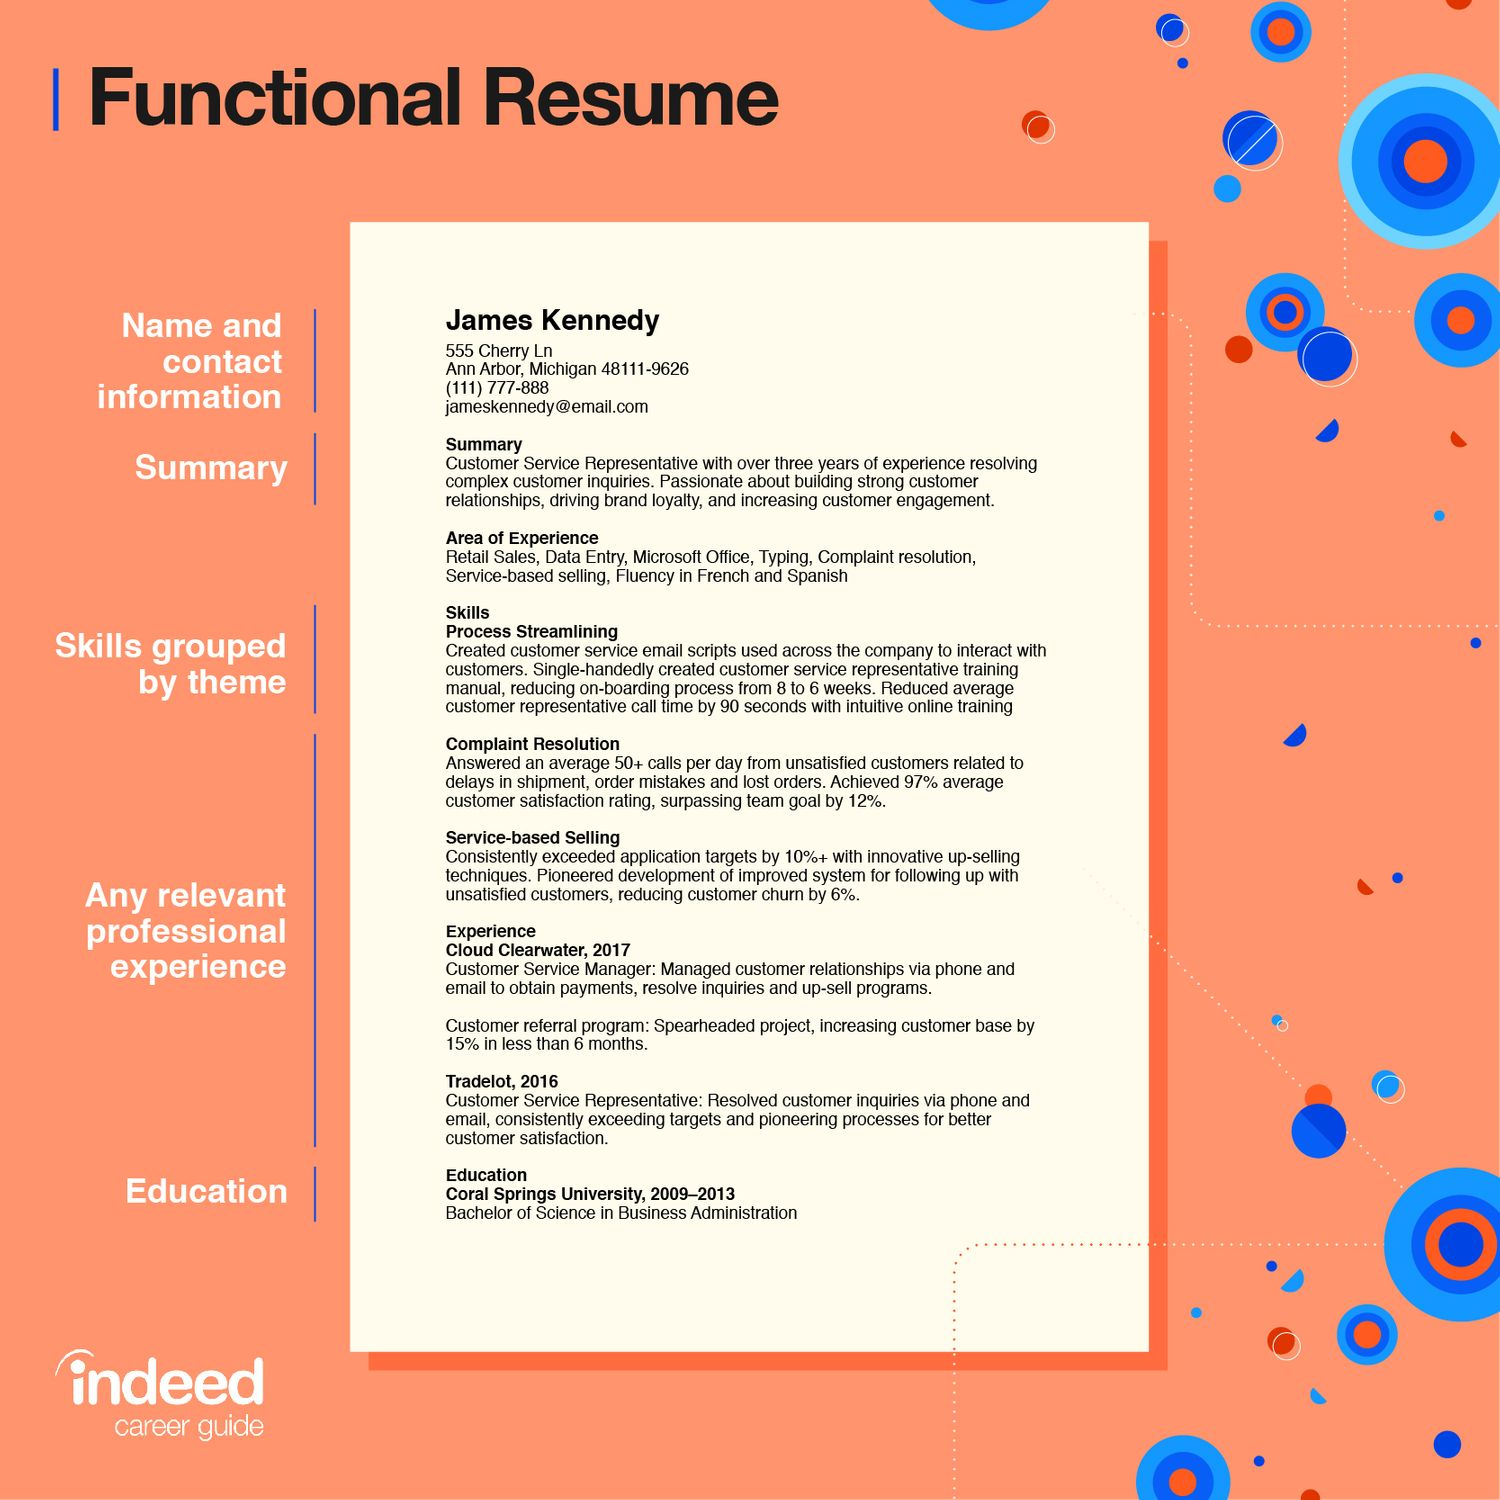 functional resume definition tips and examples indeed combination resized crew member Resume Combination Resume Definition